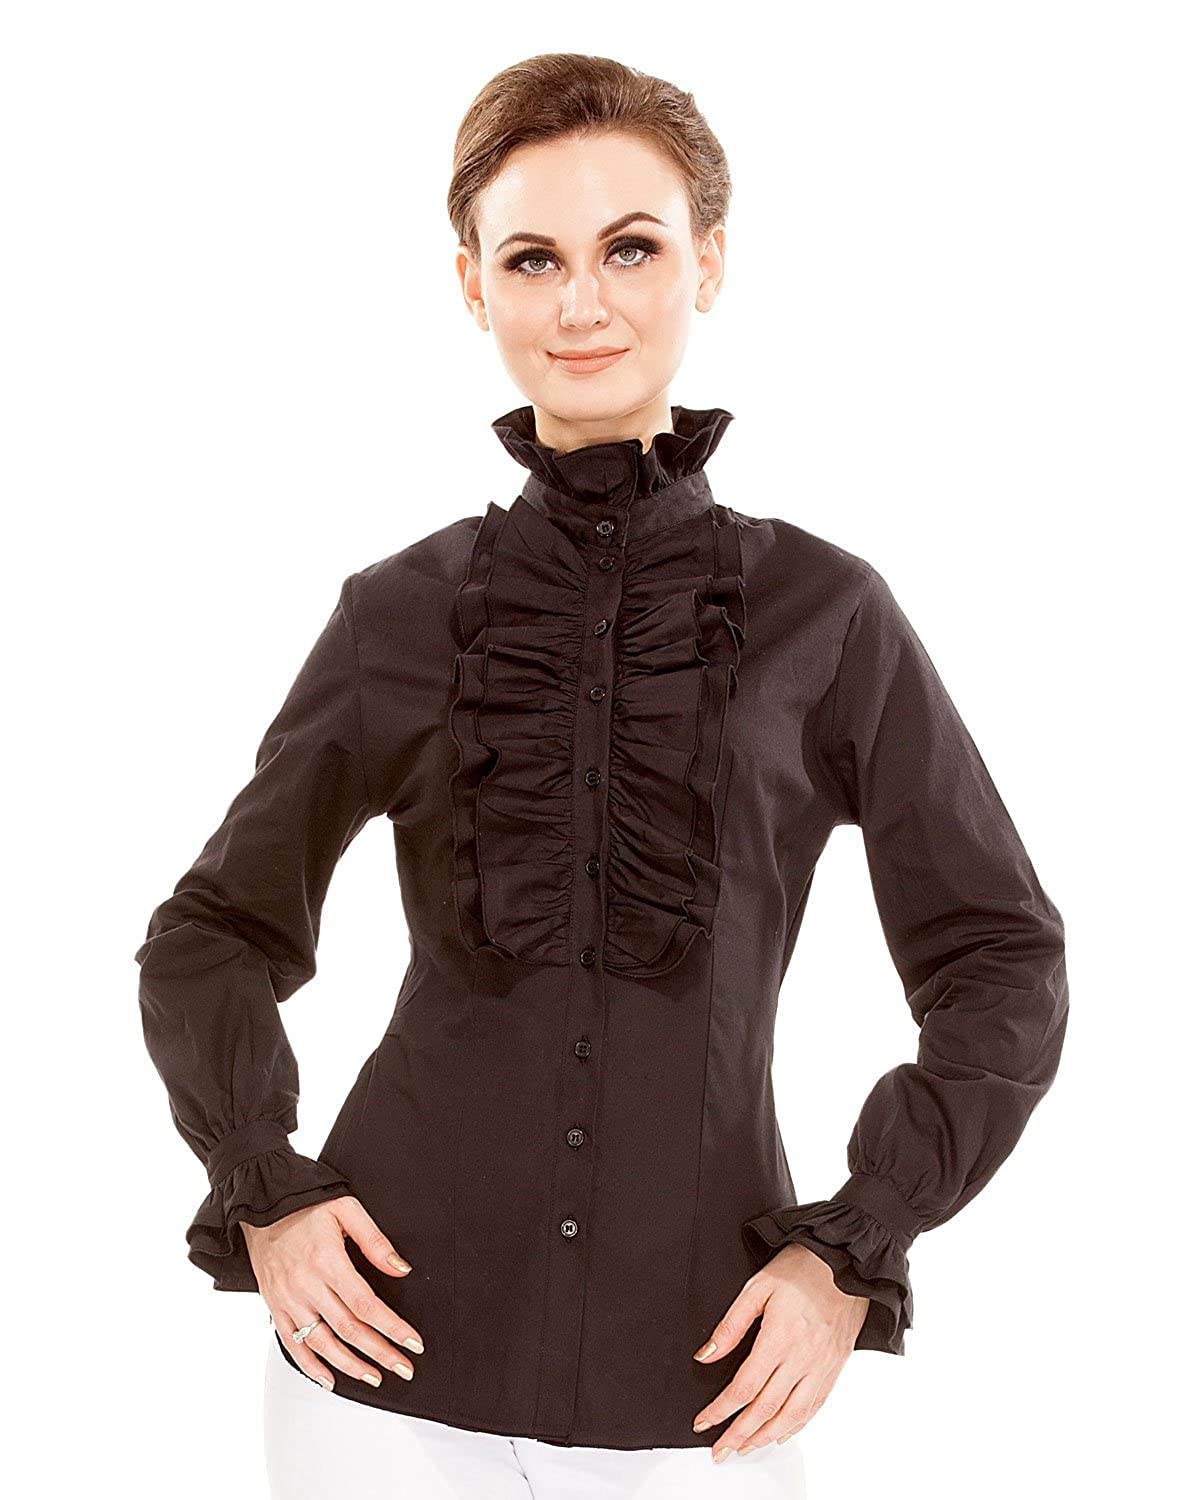 Edwardian Blouses | White & Black Lace Blouses & Sweaters ThePirateDressing Steampunk Gothic Victorian Cosplay Costume Womens Stand-up Collar 100% Cotton Blouse Shirt $41.95 AT vintagedancer.com